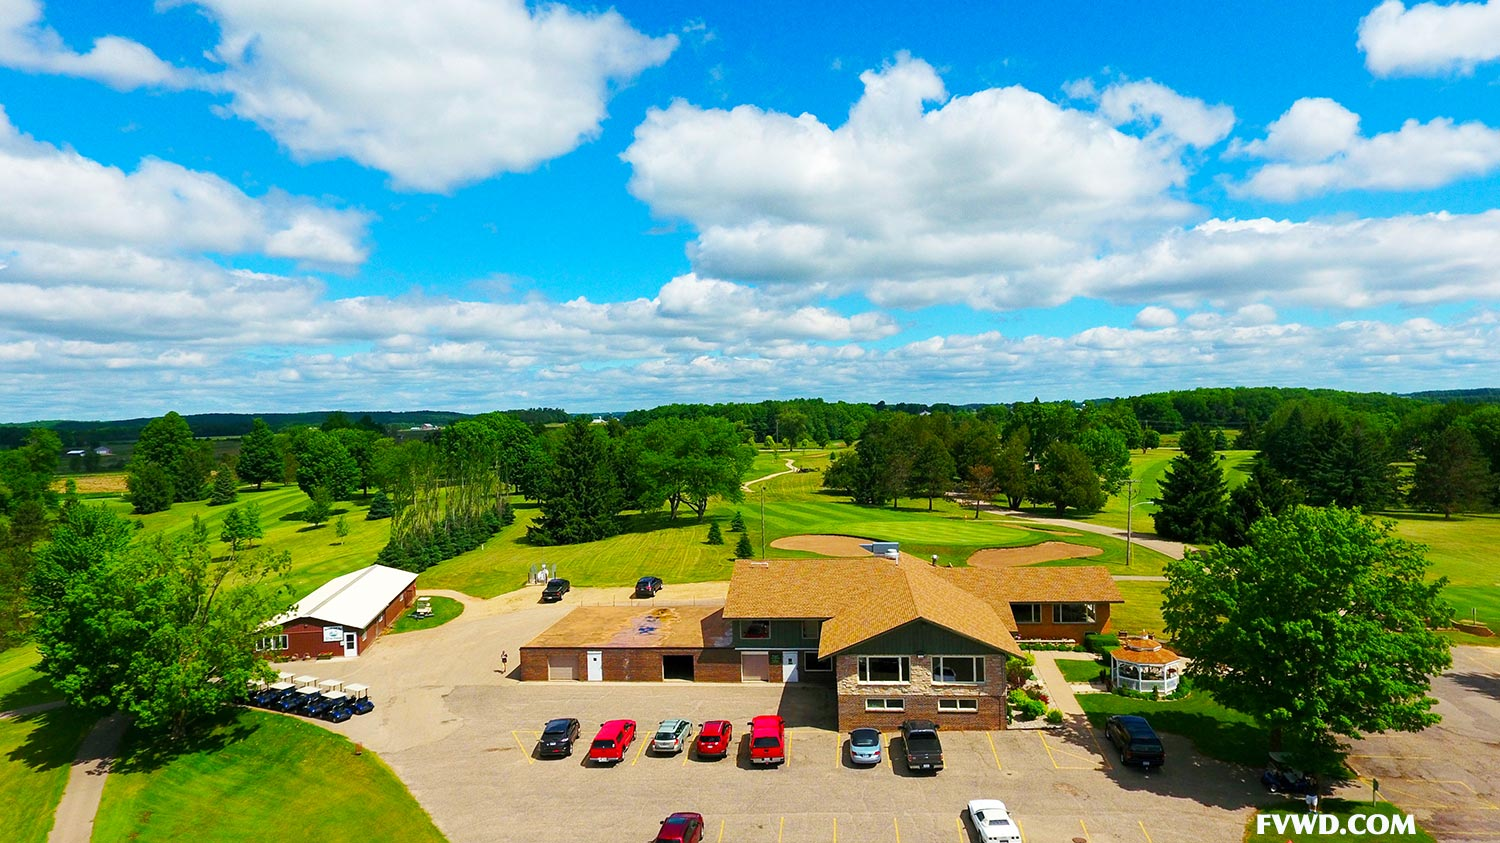 a1058509468 Drone Skytography Services - Fox Valley Web Design LLC